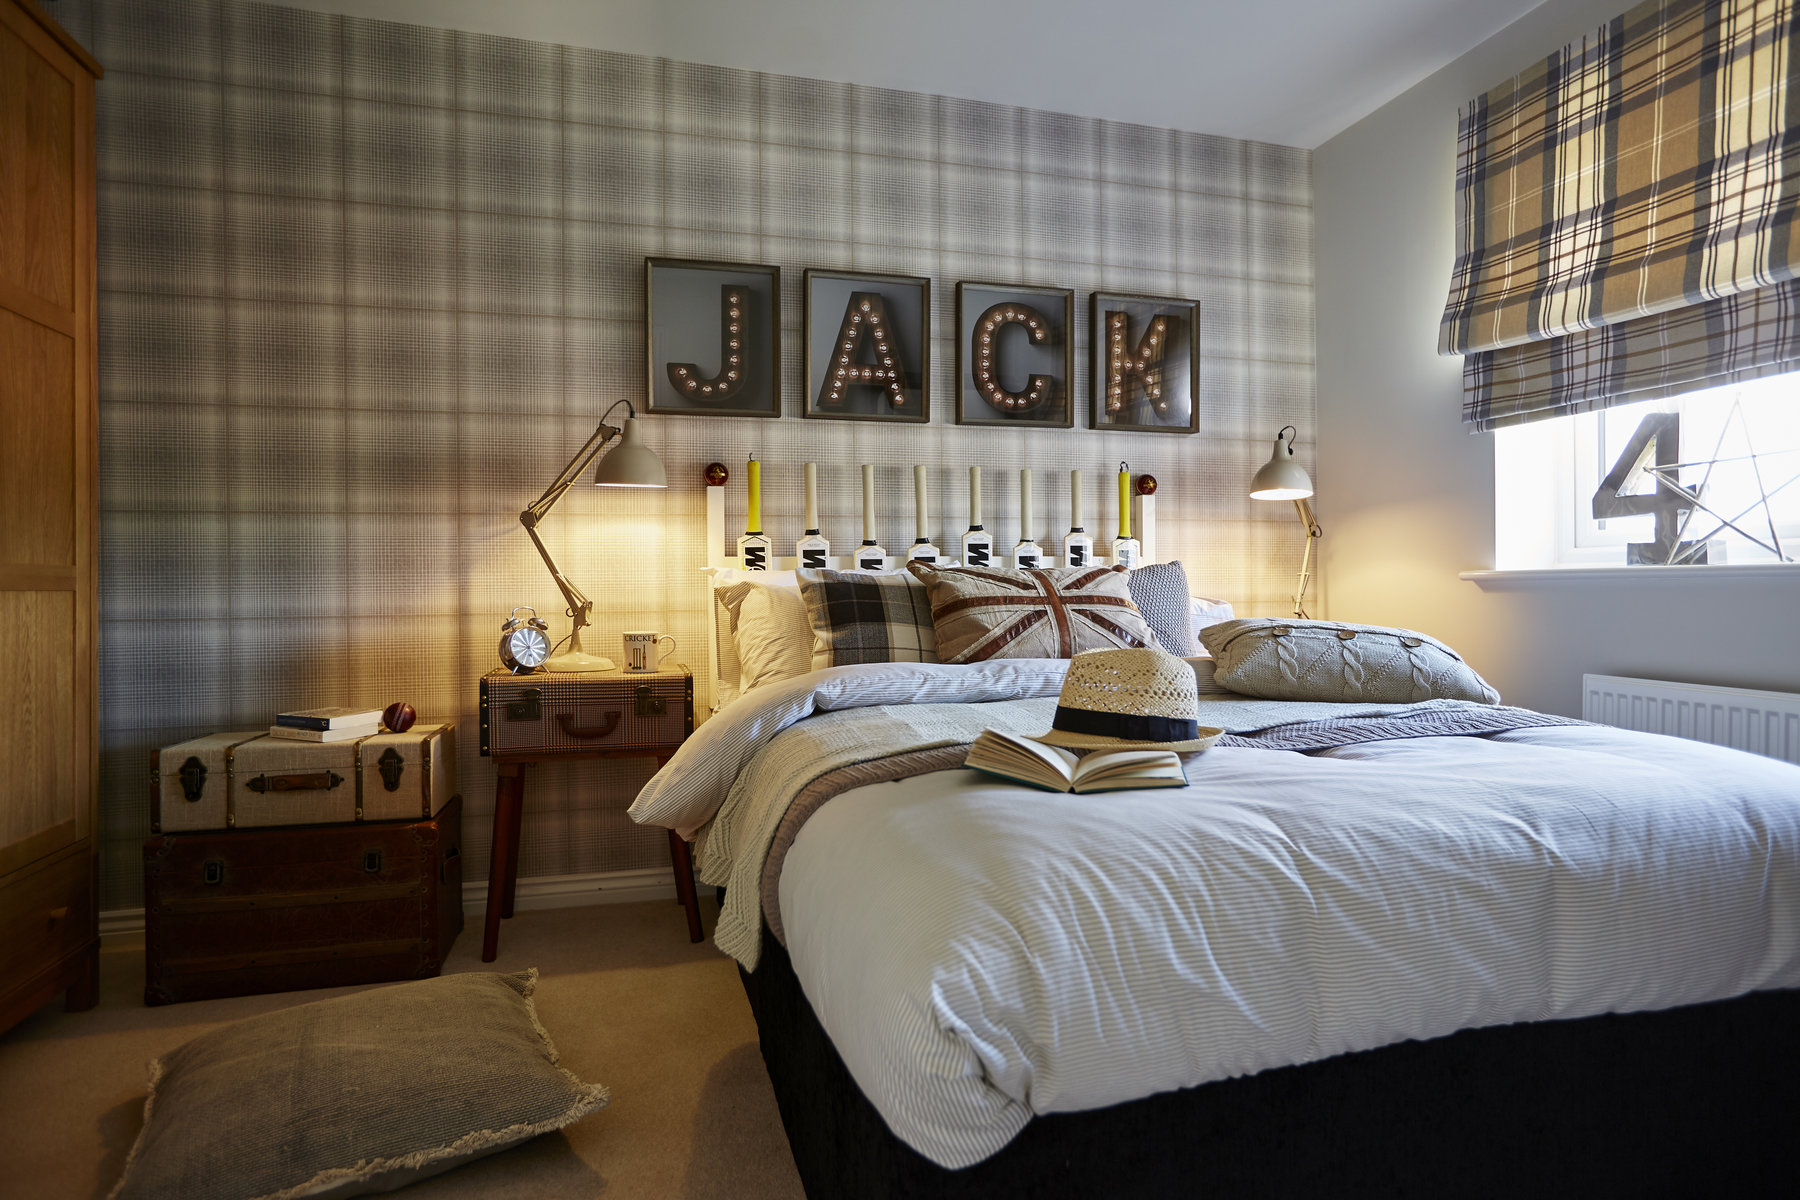 rsz_tw_mids_burlington_fields_shifnal_pa48_shelford_bedroom_2